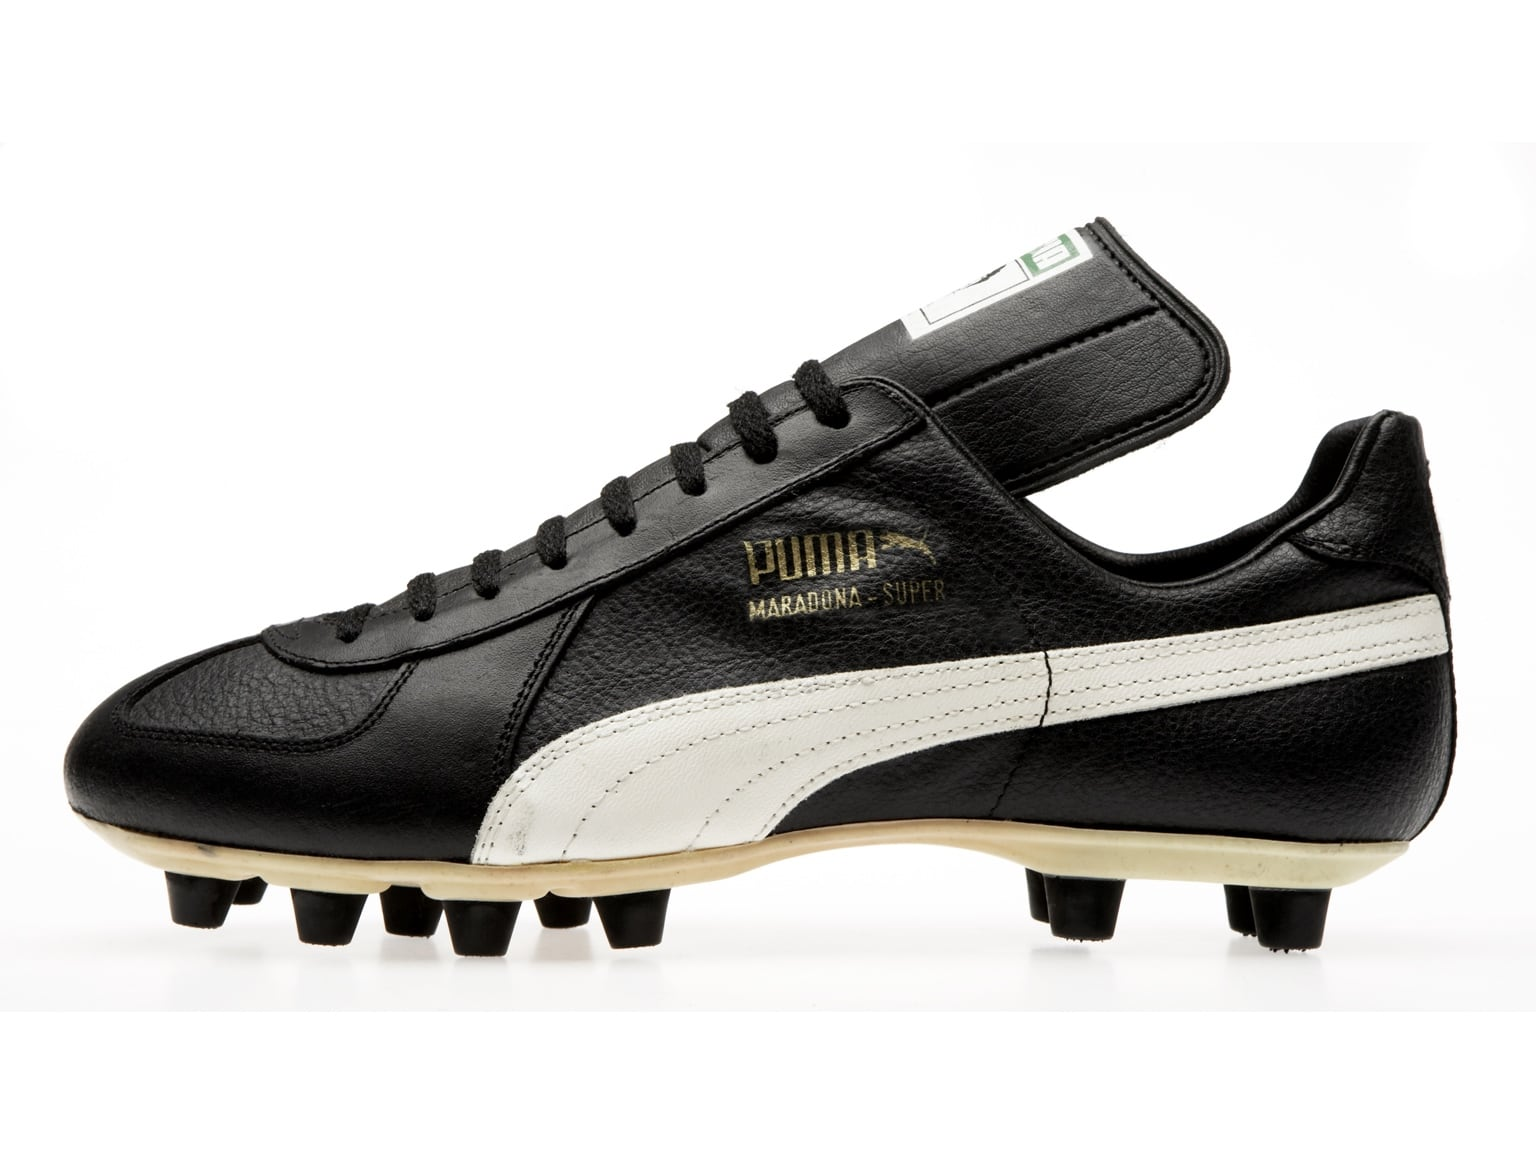 It S Time We Give The Puma King The Love It Deserves Urban Pitch